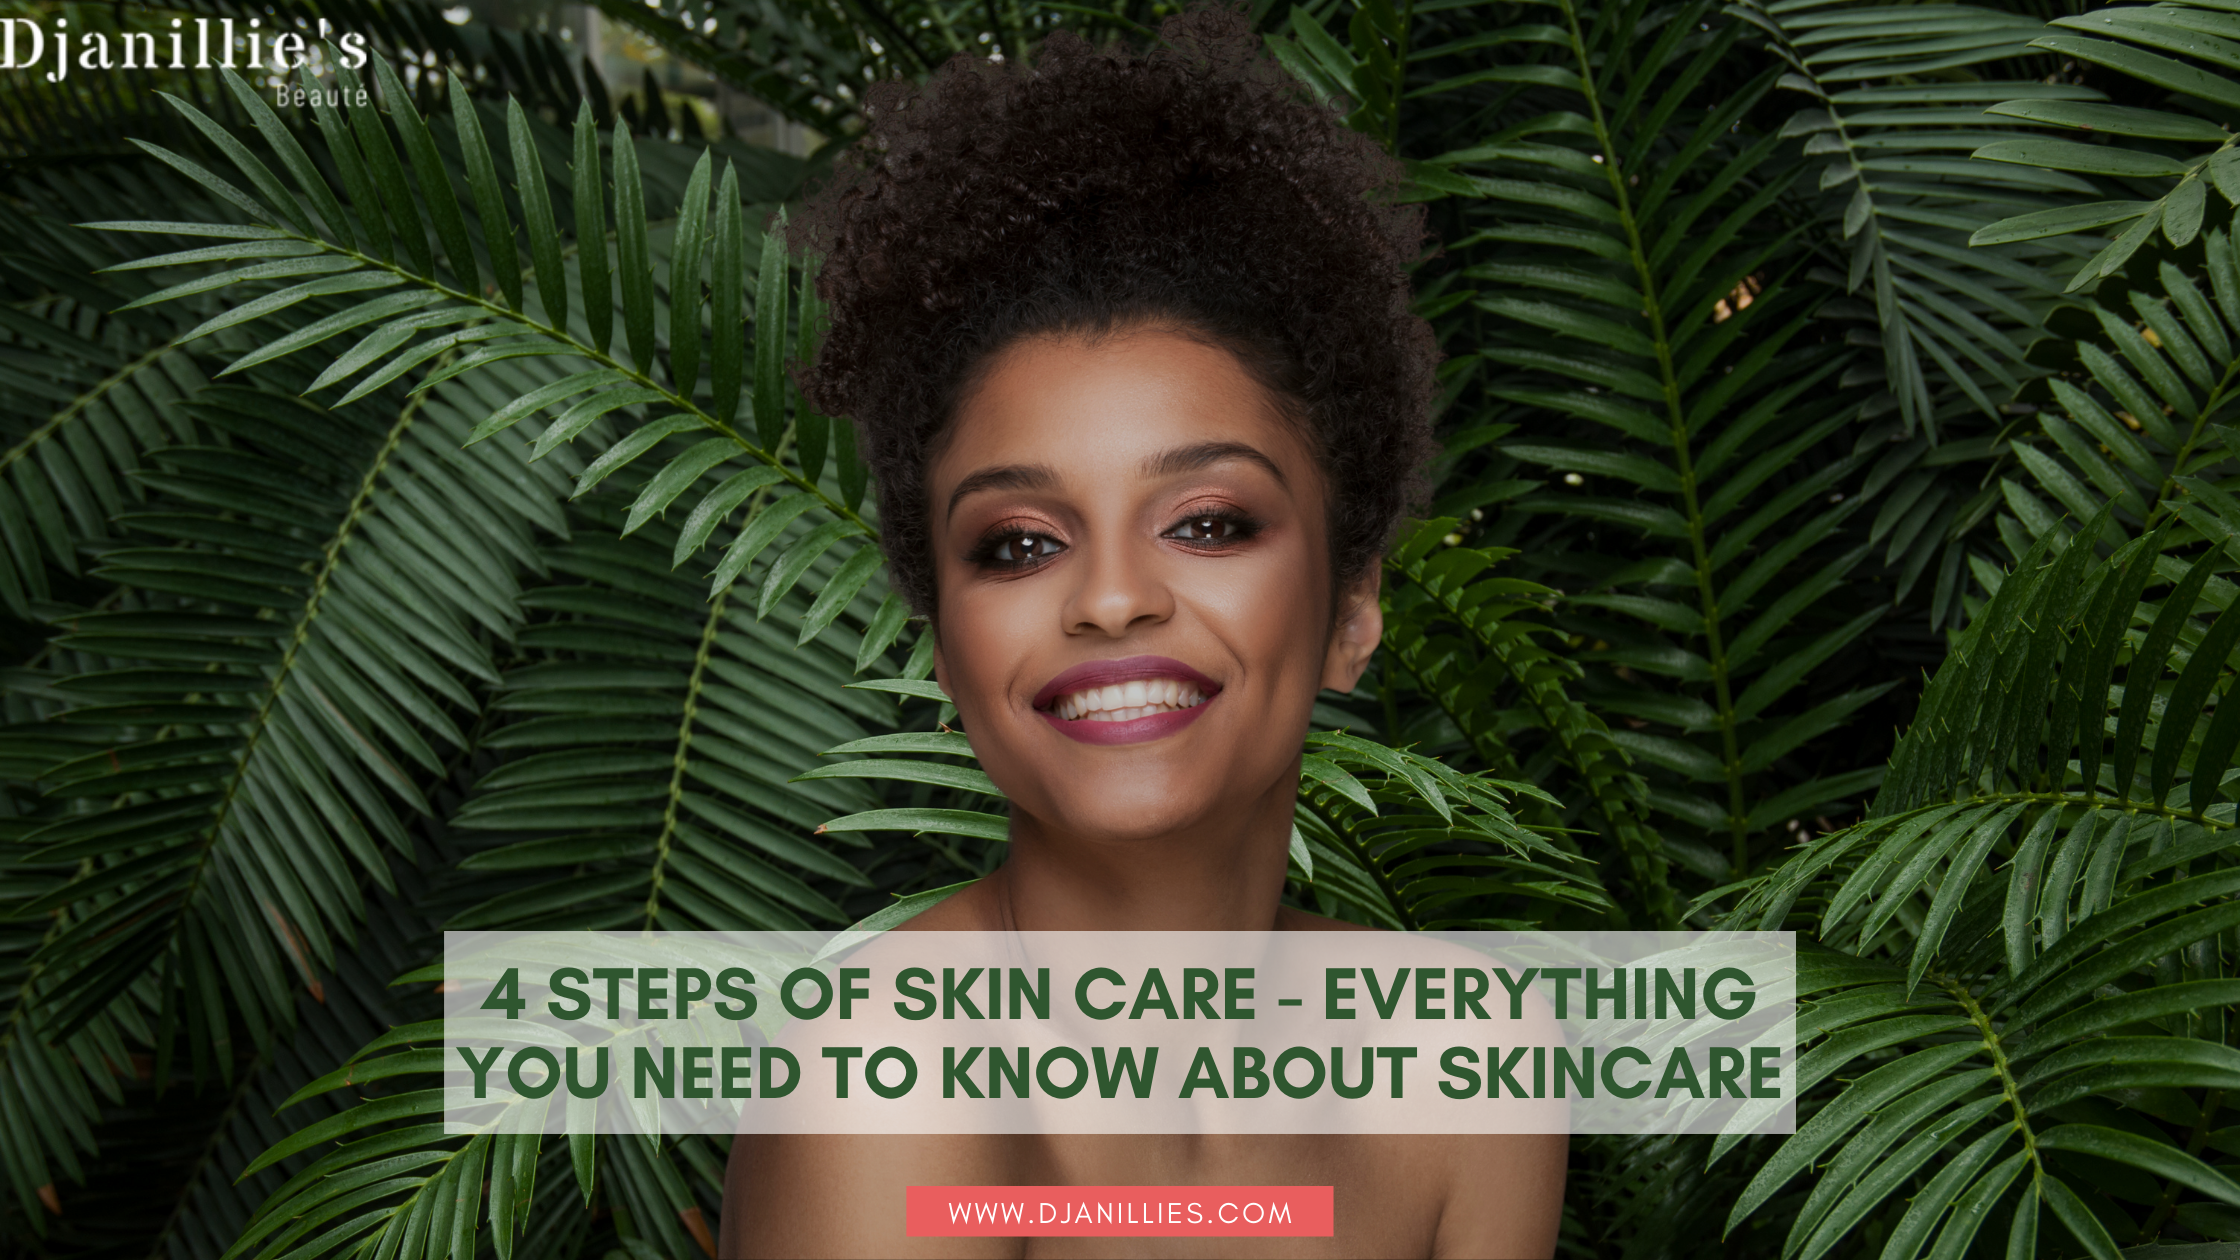 4 Steps of Skin Care - Everything You Need To Know About Skincare